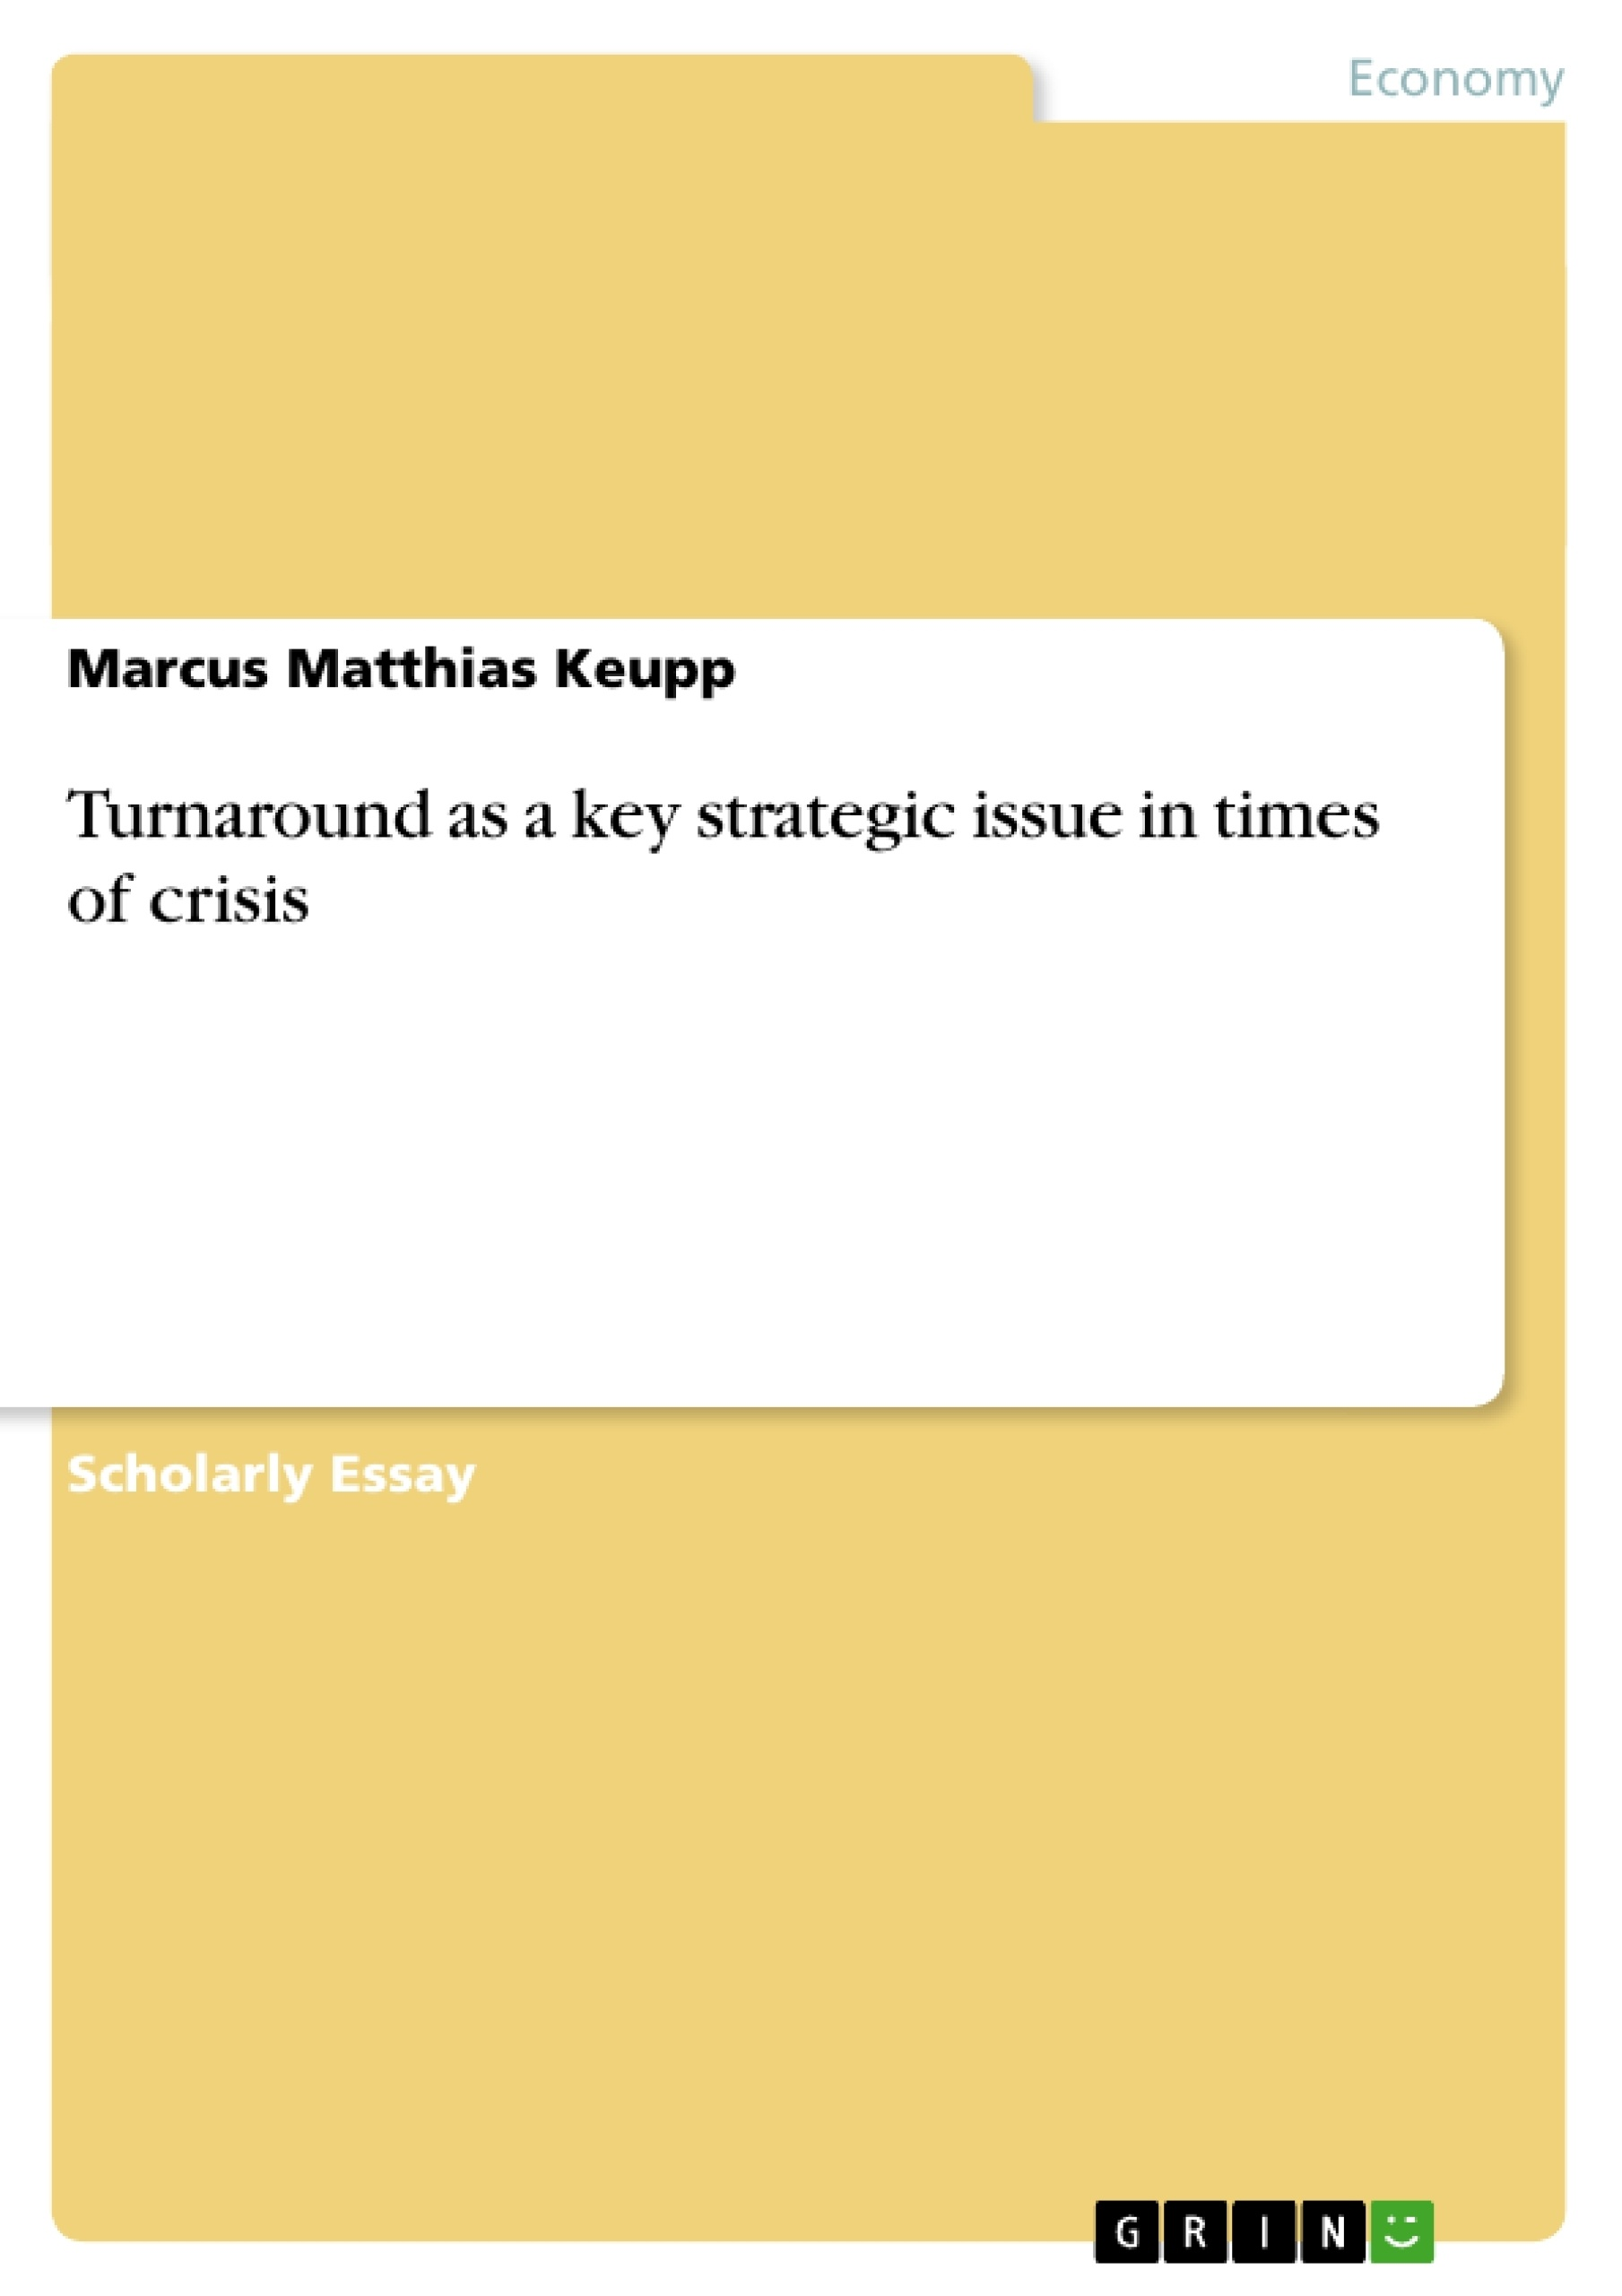 Title: Turnaround as a key strategic issue in times of crisis